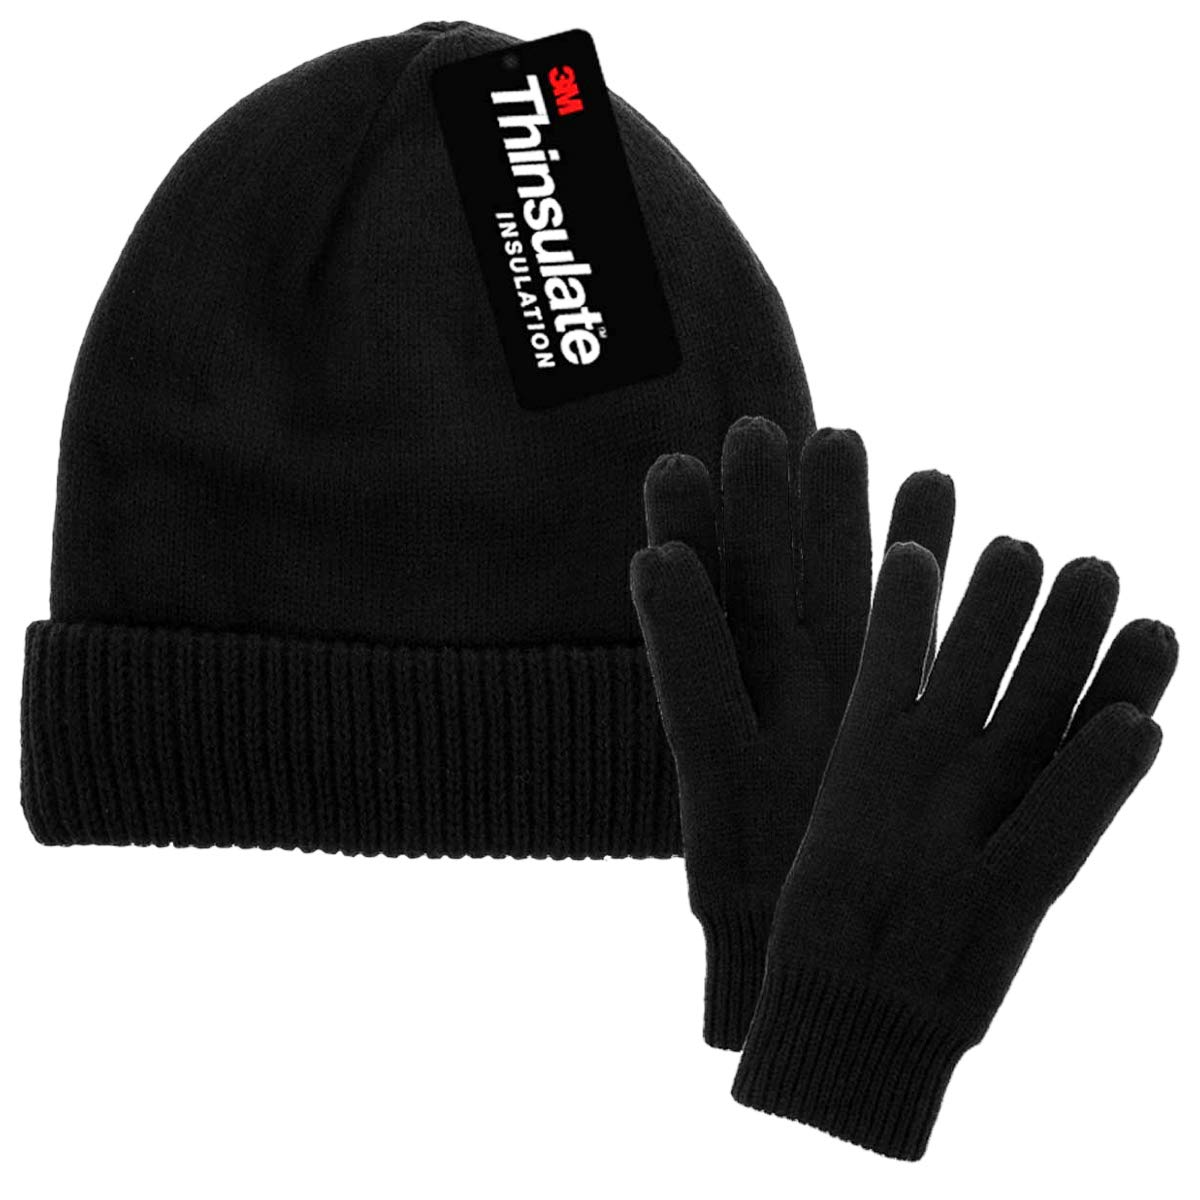 DG Hill Mens Winter Hat And Gloves Set with 3M Thinsulate fleece lining 0b299e4f1b7